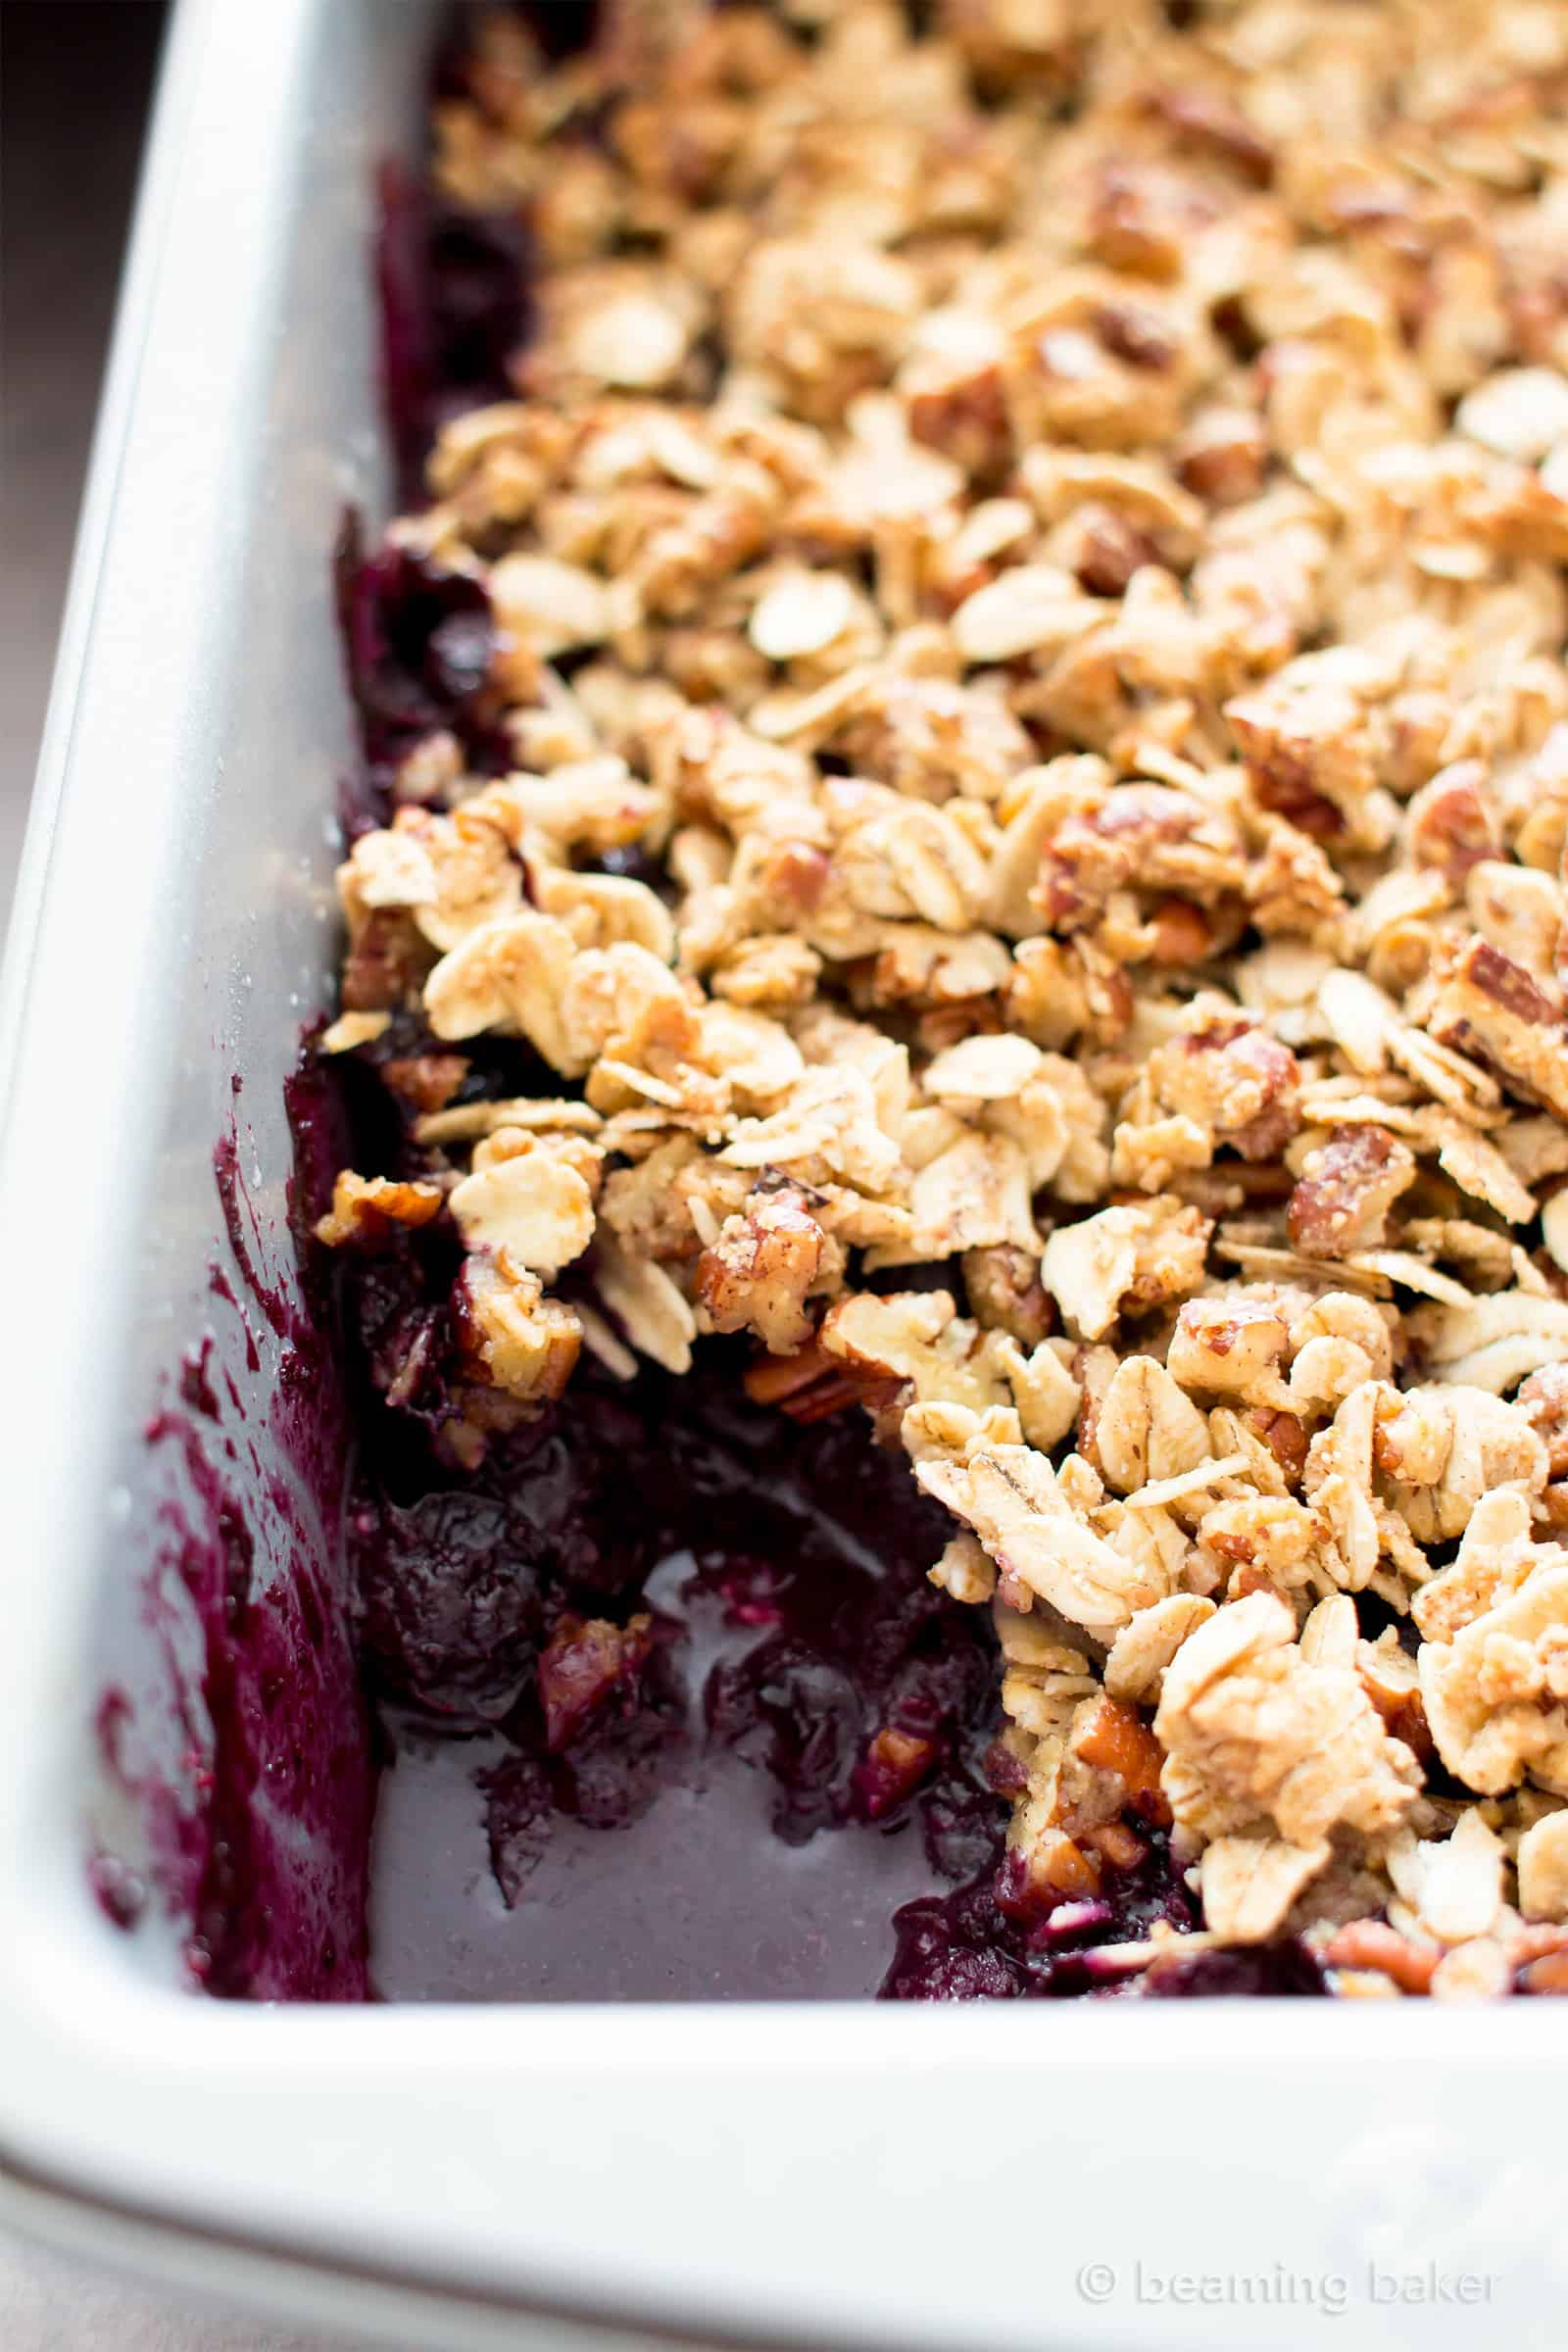 20 Mind-Blowing Vegan Blueberry Desserts to Bake